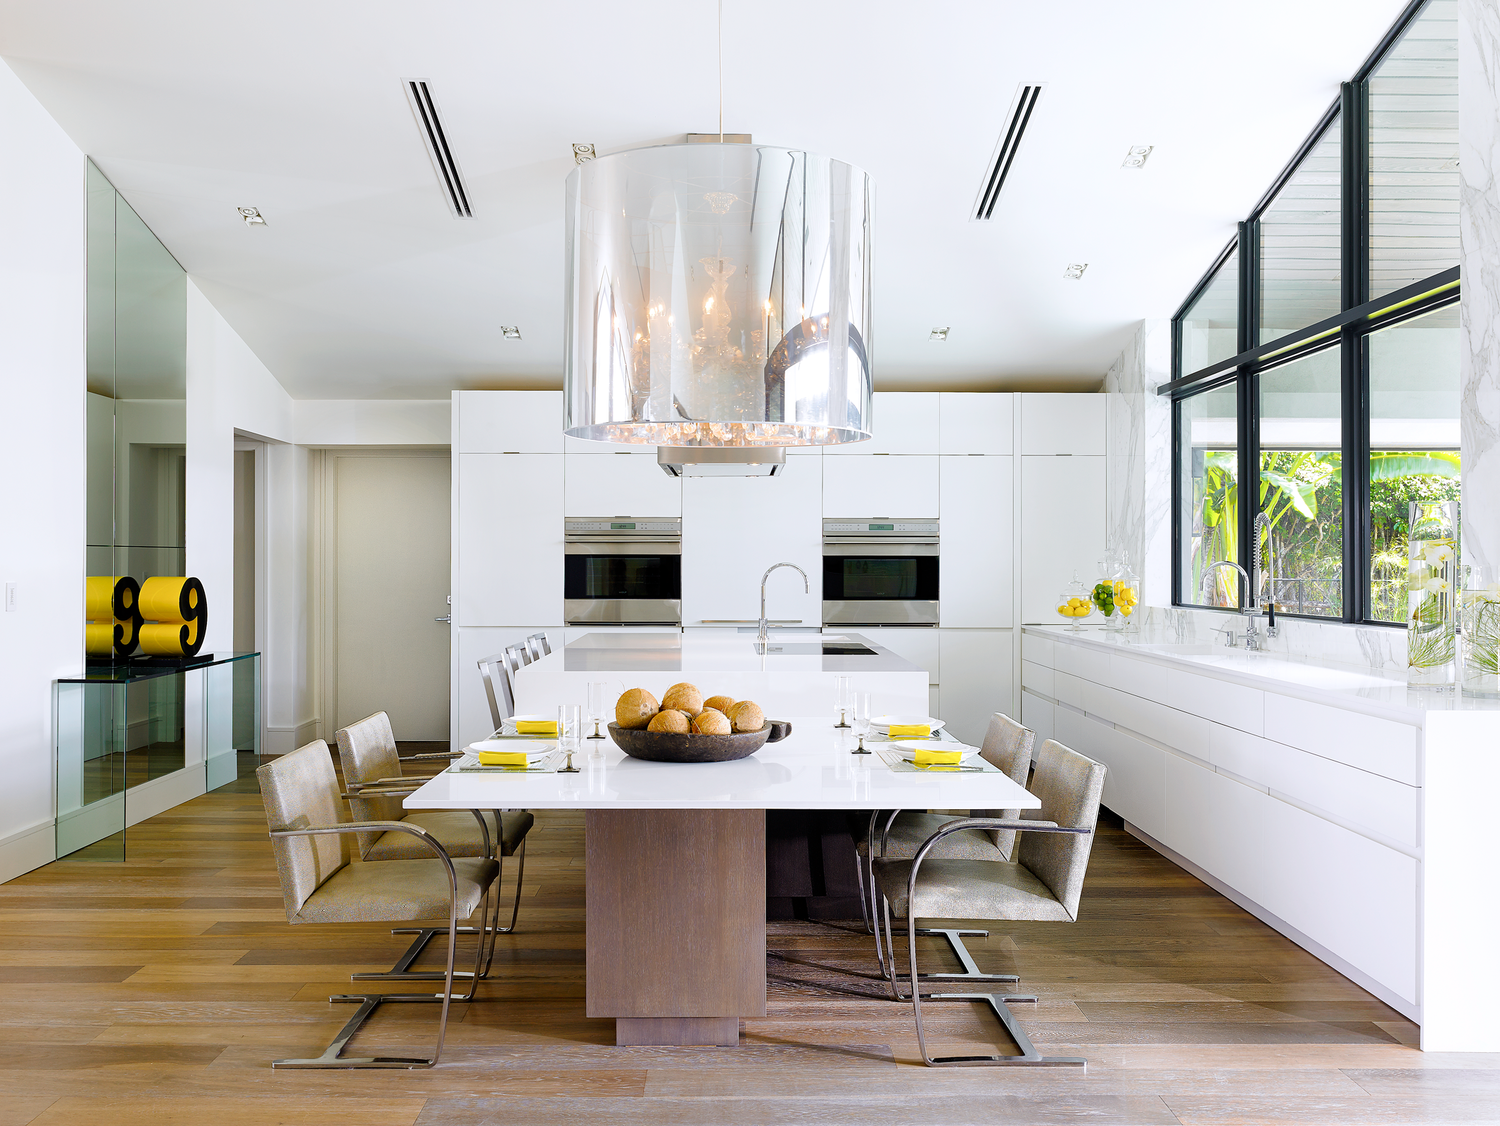 Fresh flowers add a splash of colour to this dining space from houzz - Houzzcom Kitchen Islands Houzz Quotkitchen Confidential 11 Islands With Furniture Stylequot